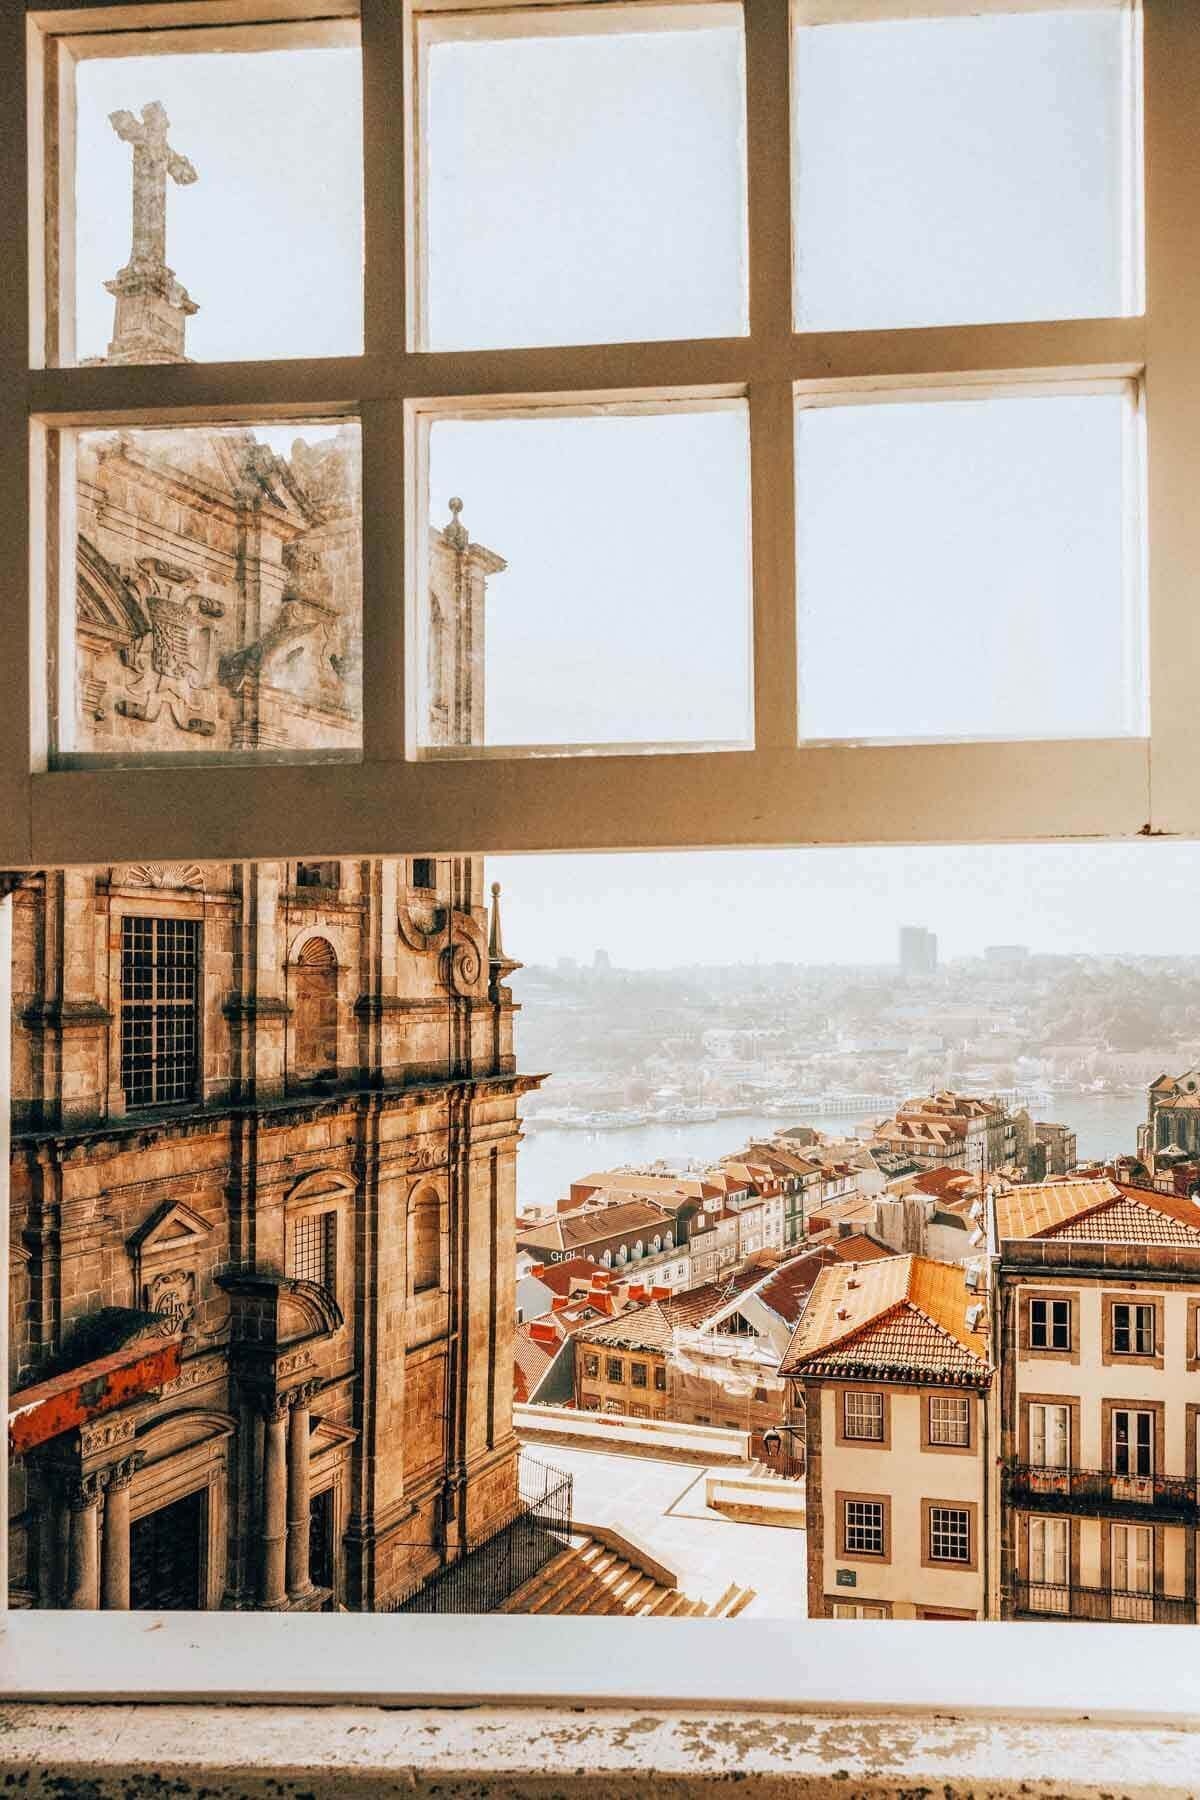 Top 10 Things to do in Porto, Portugal Visiting Porto is one of the best things to do in Portugal! If you're looking for a new vacation spot that's still flying under the radar, look no further than Portugal! A lot of people haven't caught on to just how amazing Portugal is. As you know, […] The post Top 10 Things to do in Porto, Portugal appeared first on Avenly Lane Travel.